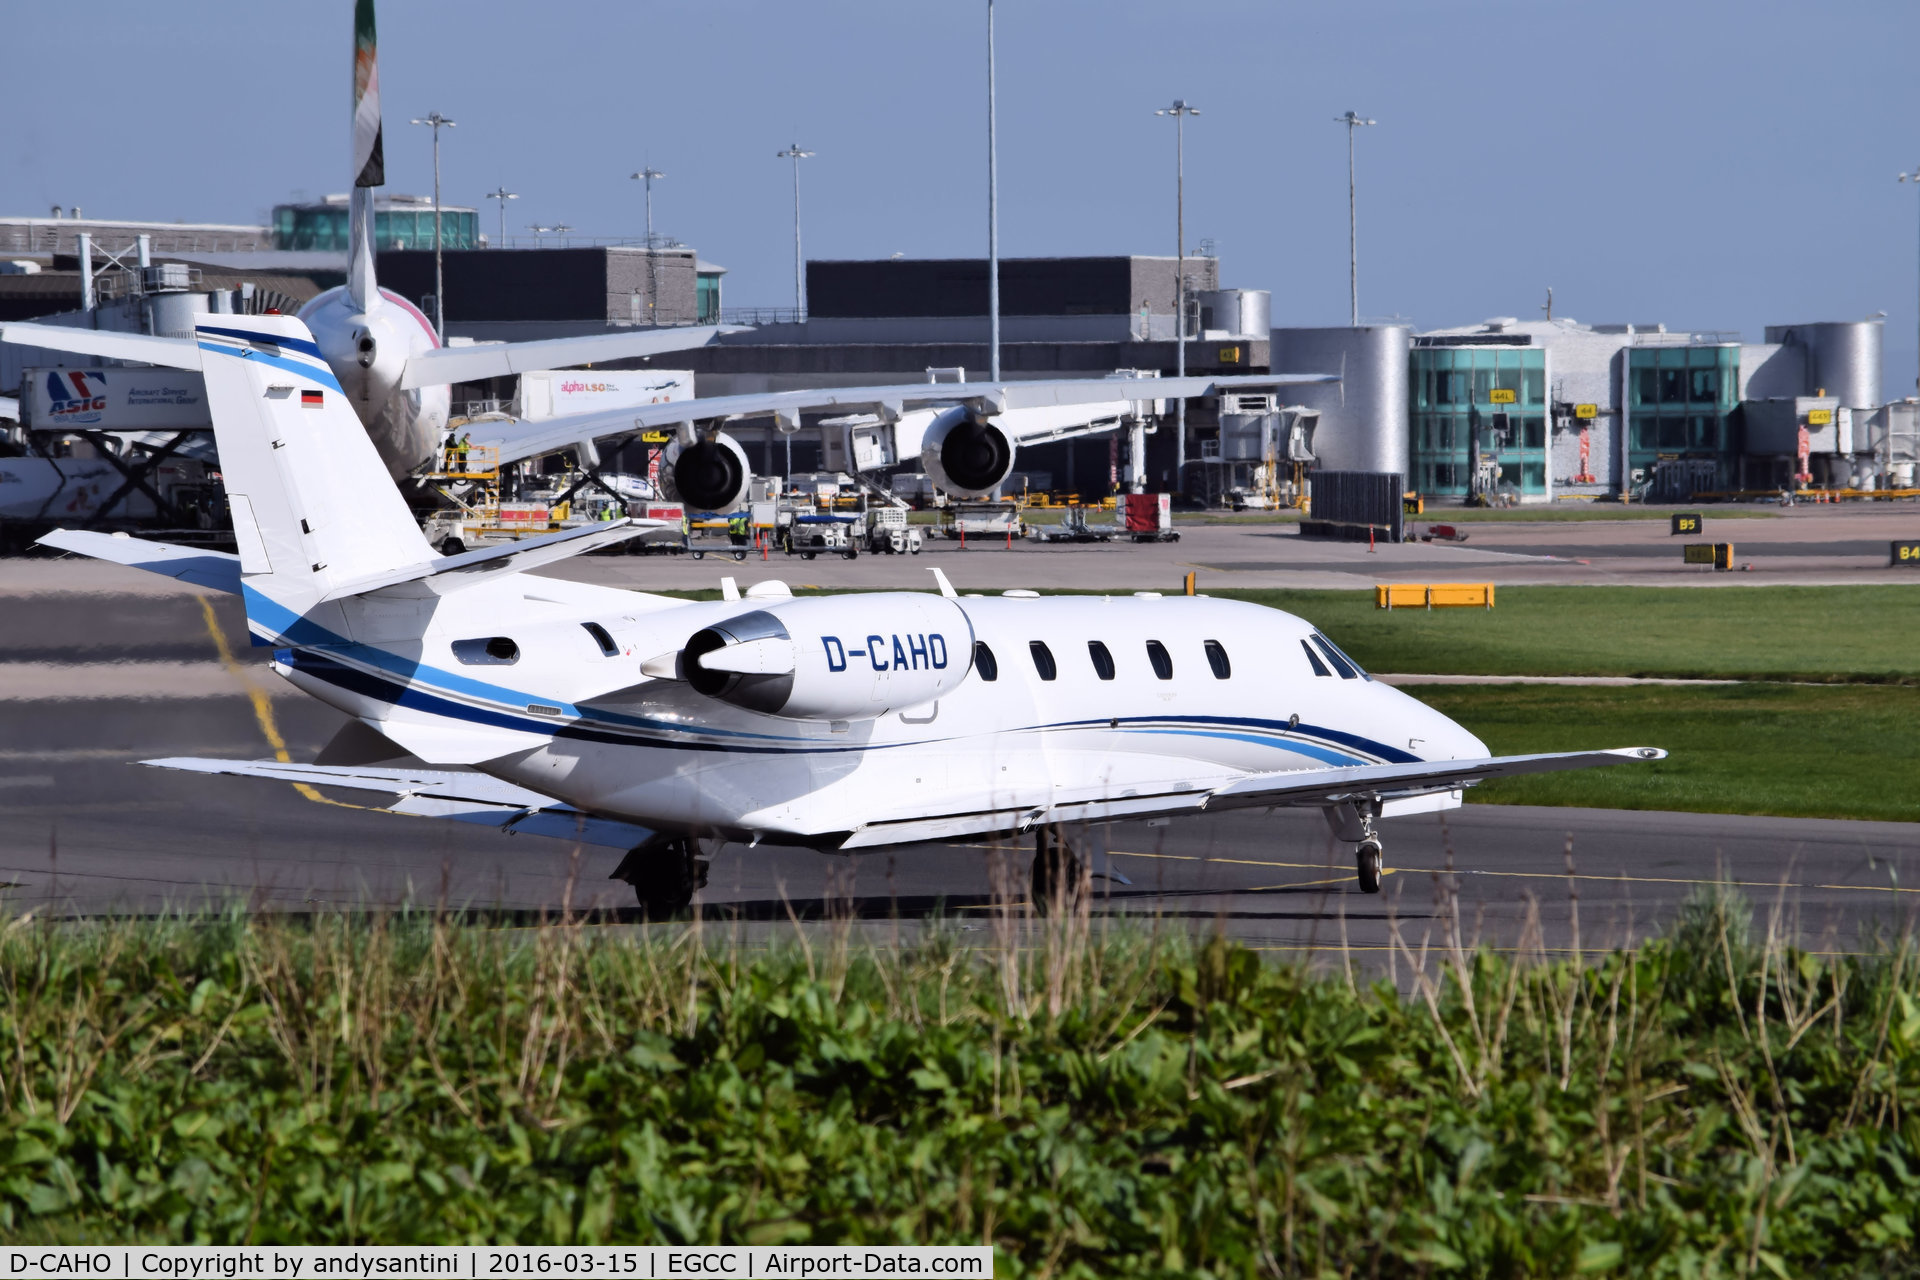 D-CAHO, 2014 Cessna 560 Citation Excel XLS+ C/N 560-6165, taxing out for take off